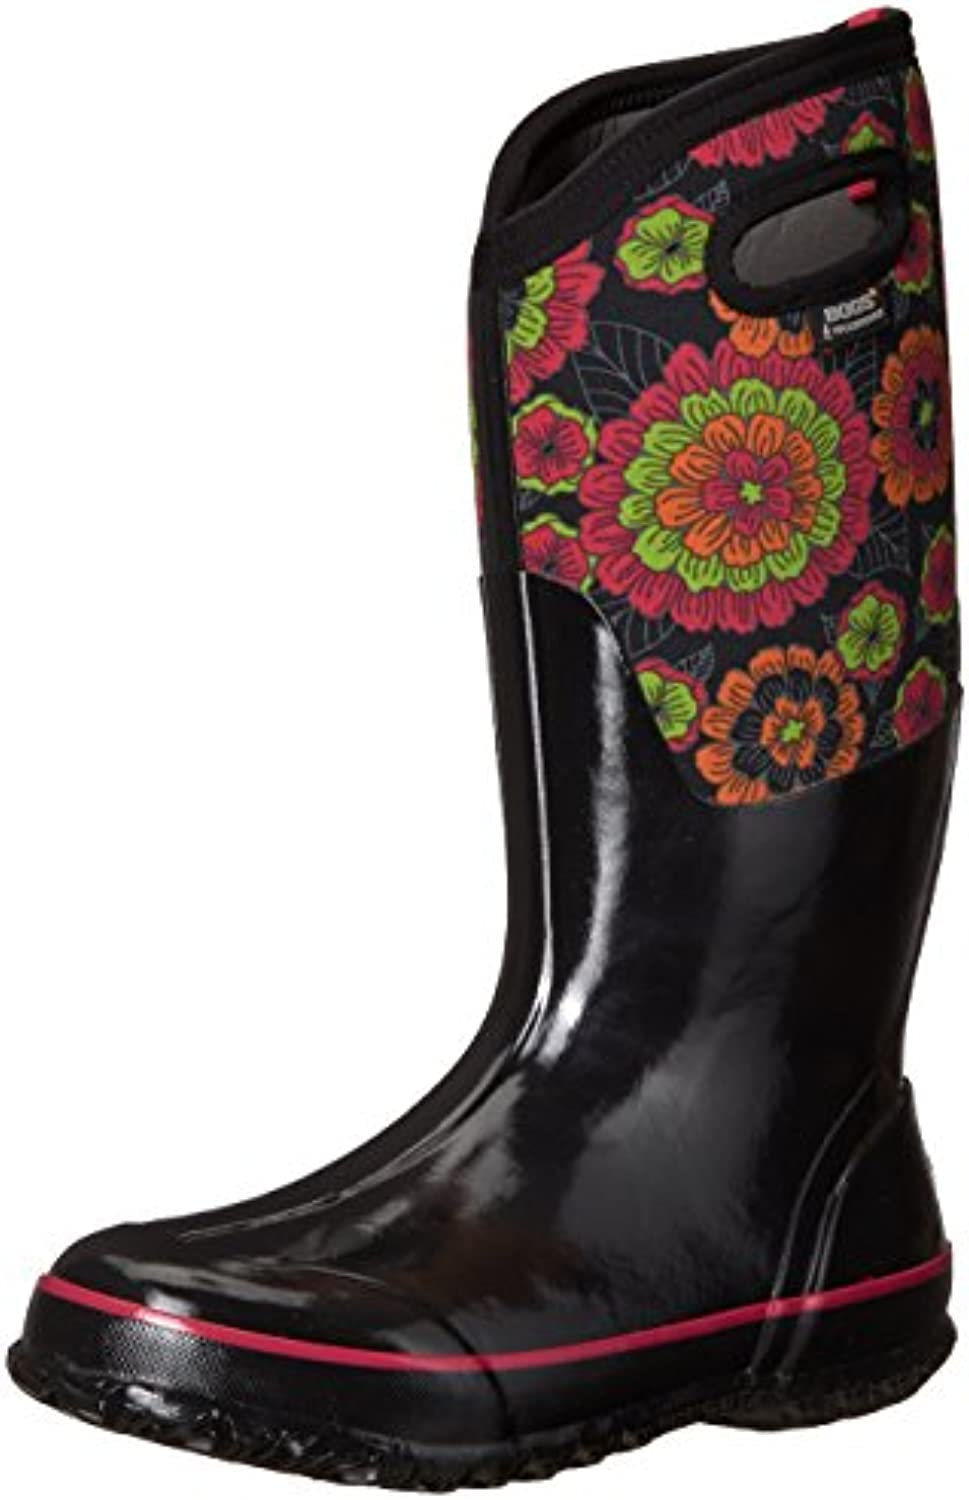 Bogs Ladies Classic Pansies Black Insulated Warm Waterproof Wellies Boot 72117-UK 8 (EU 42)